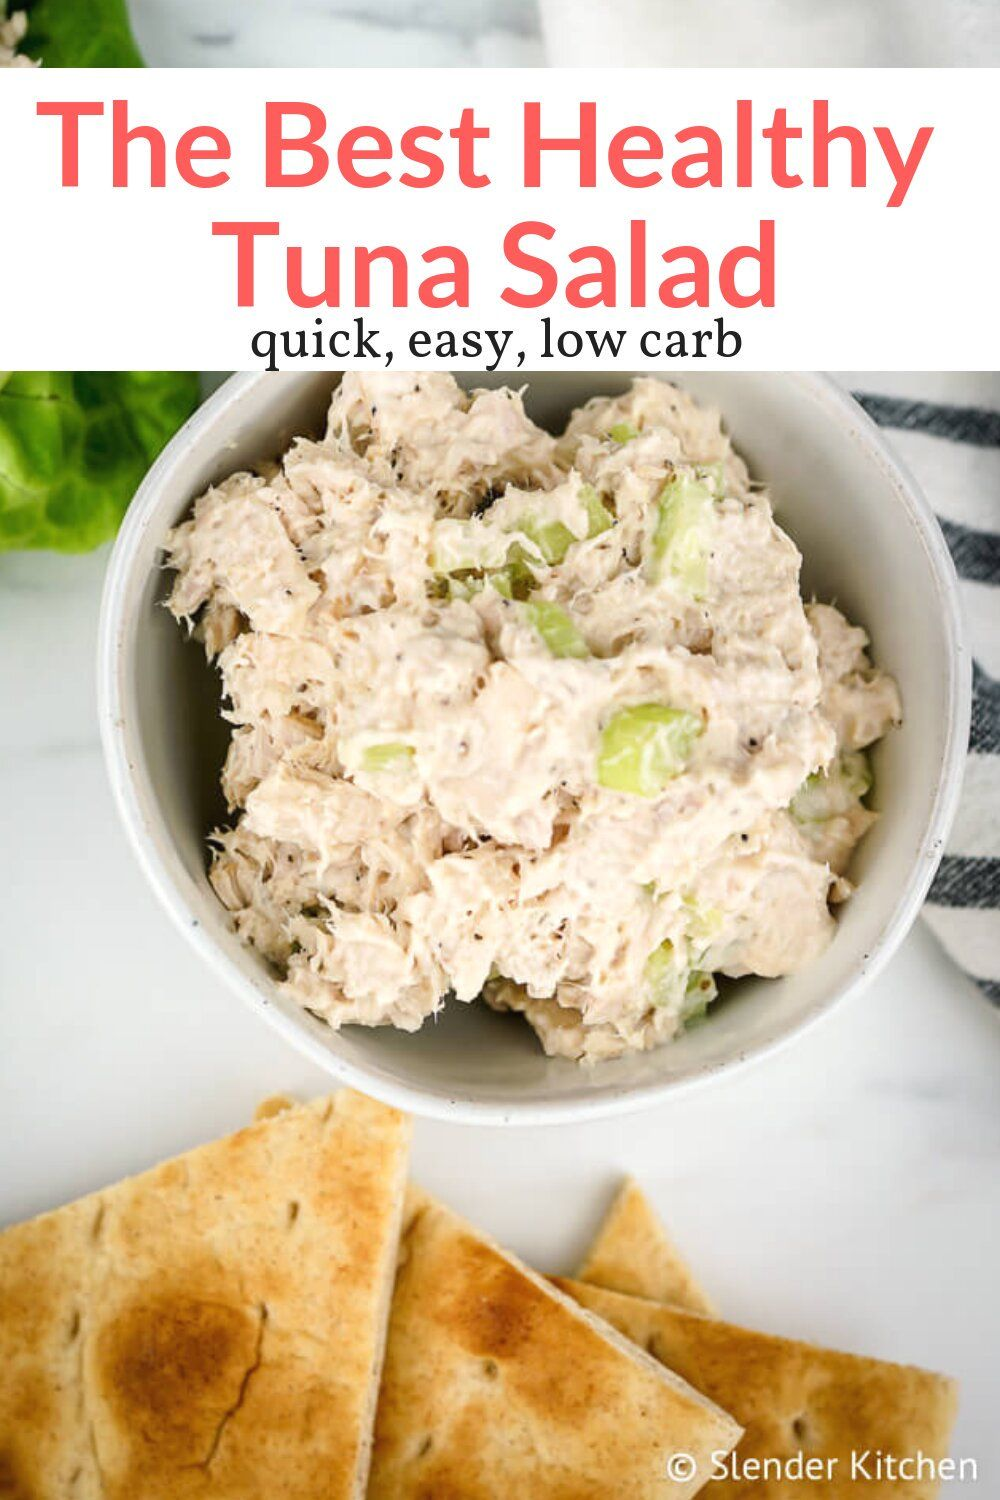 Healthy Tuna Salad Slender Kitchen Recipe Tuna Salad Recipe Healthy Healthy Tuna Healthy Tuna Salad